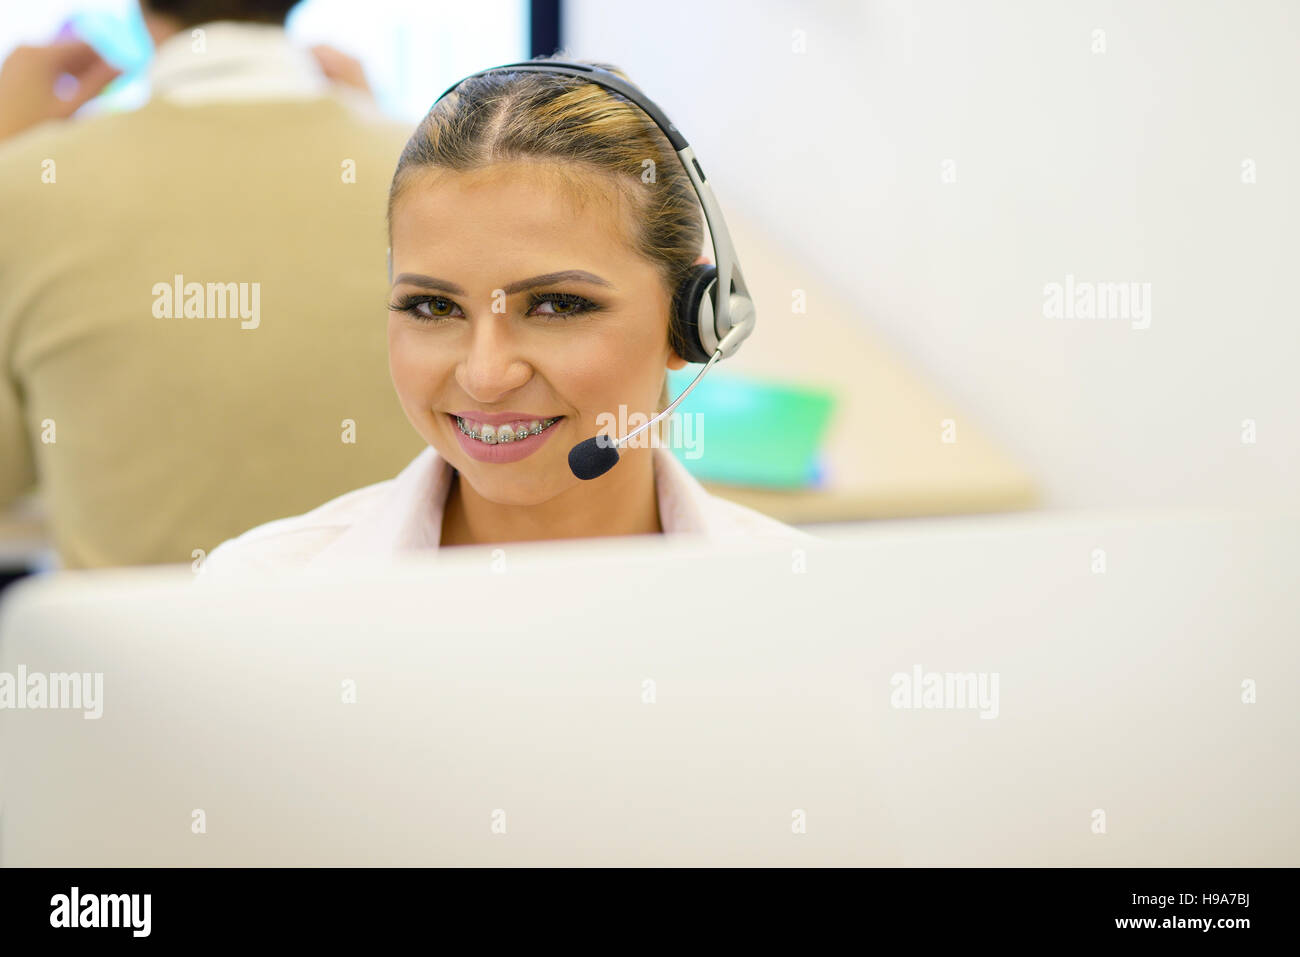 Woman With Braces Stock Photos & Woman With Braces Stock Images - Alamy